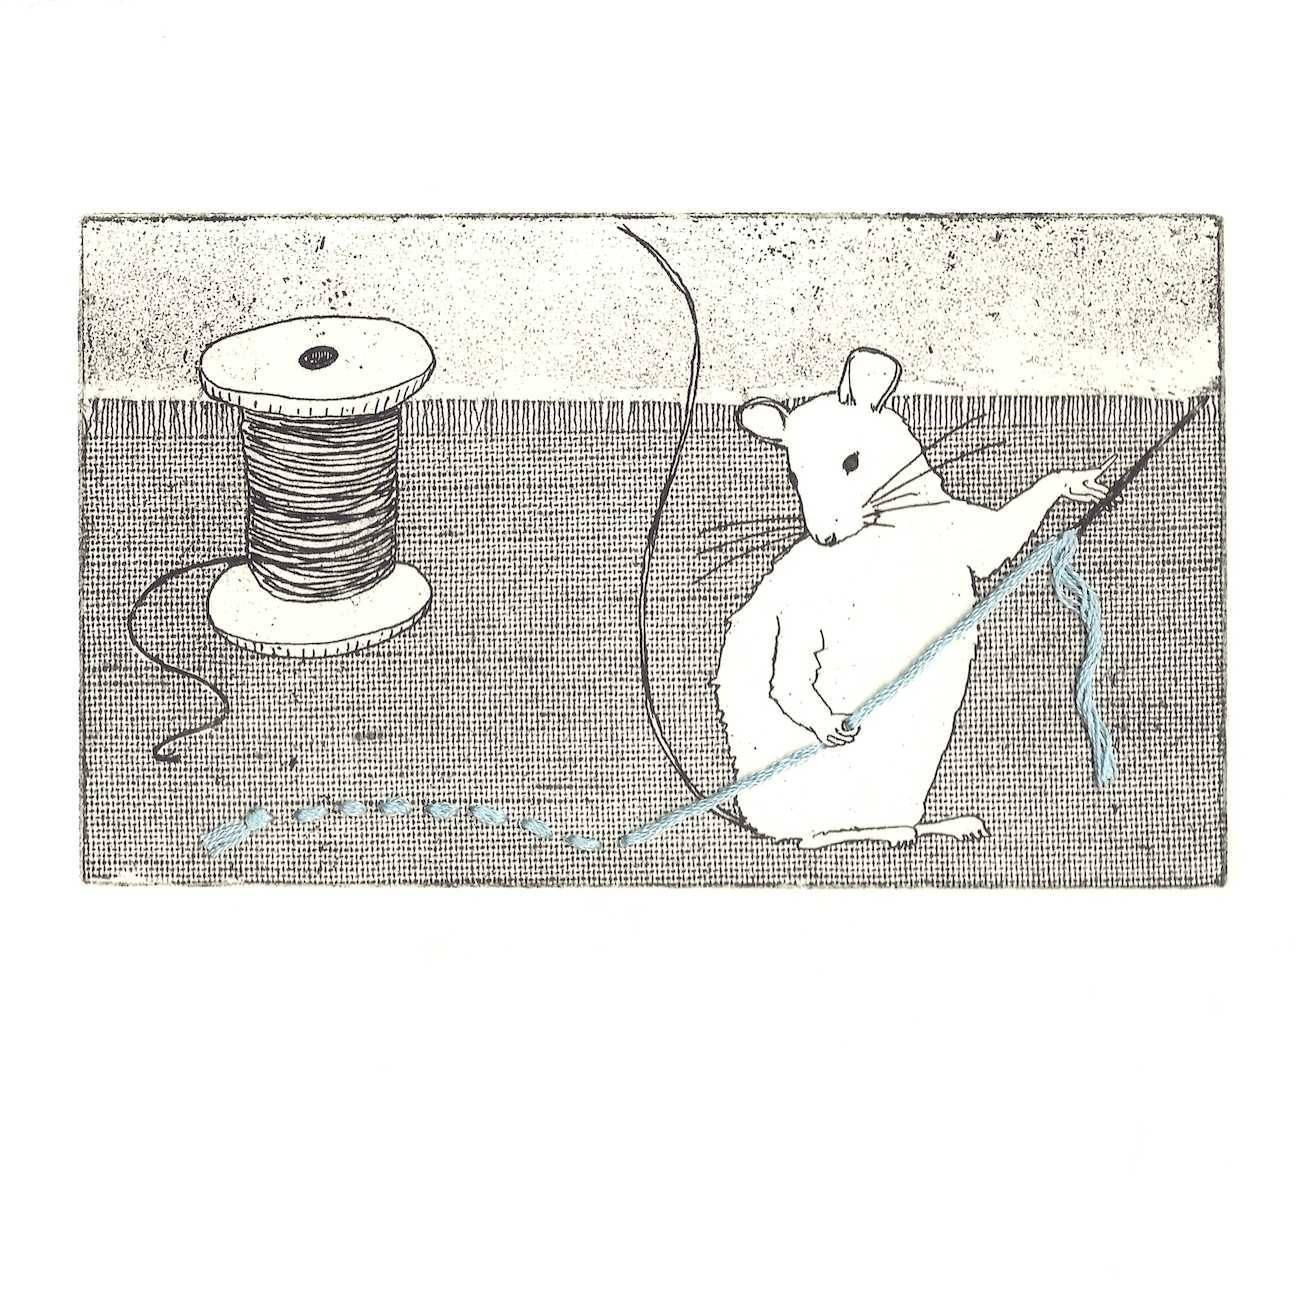 zb sewing mouse.jpg